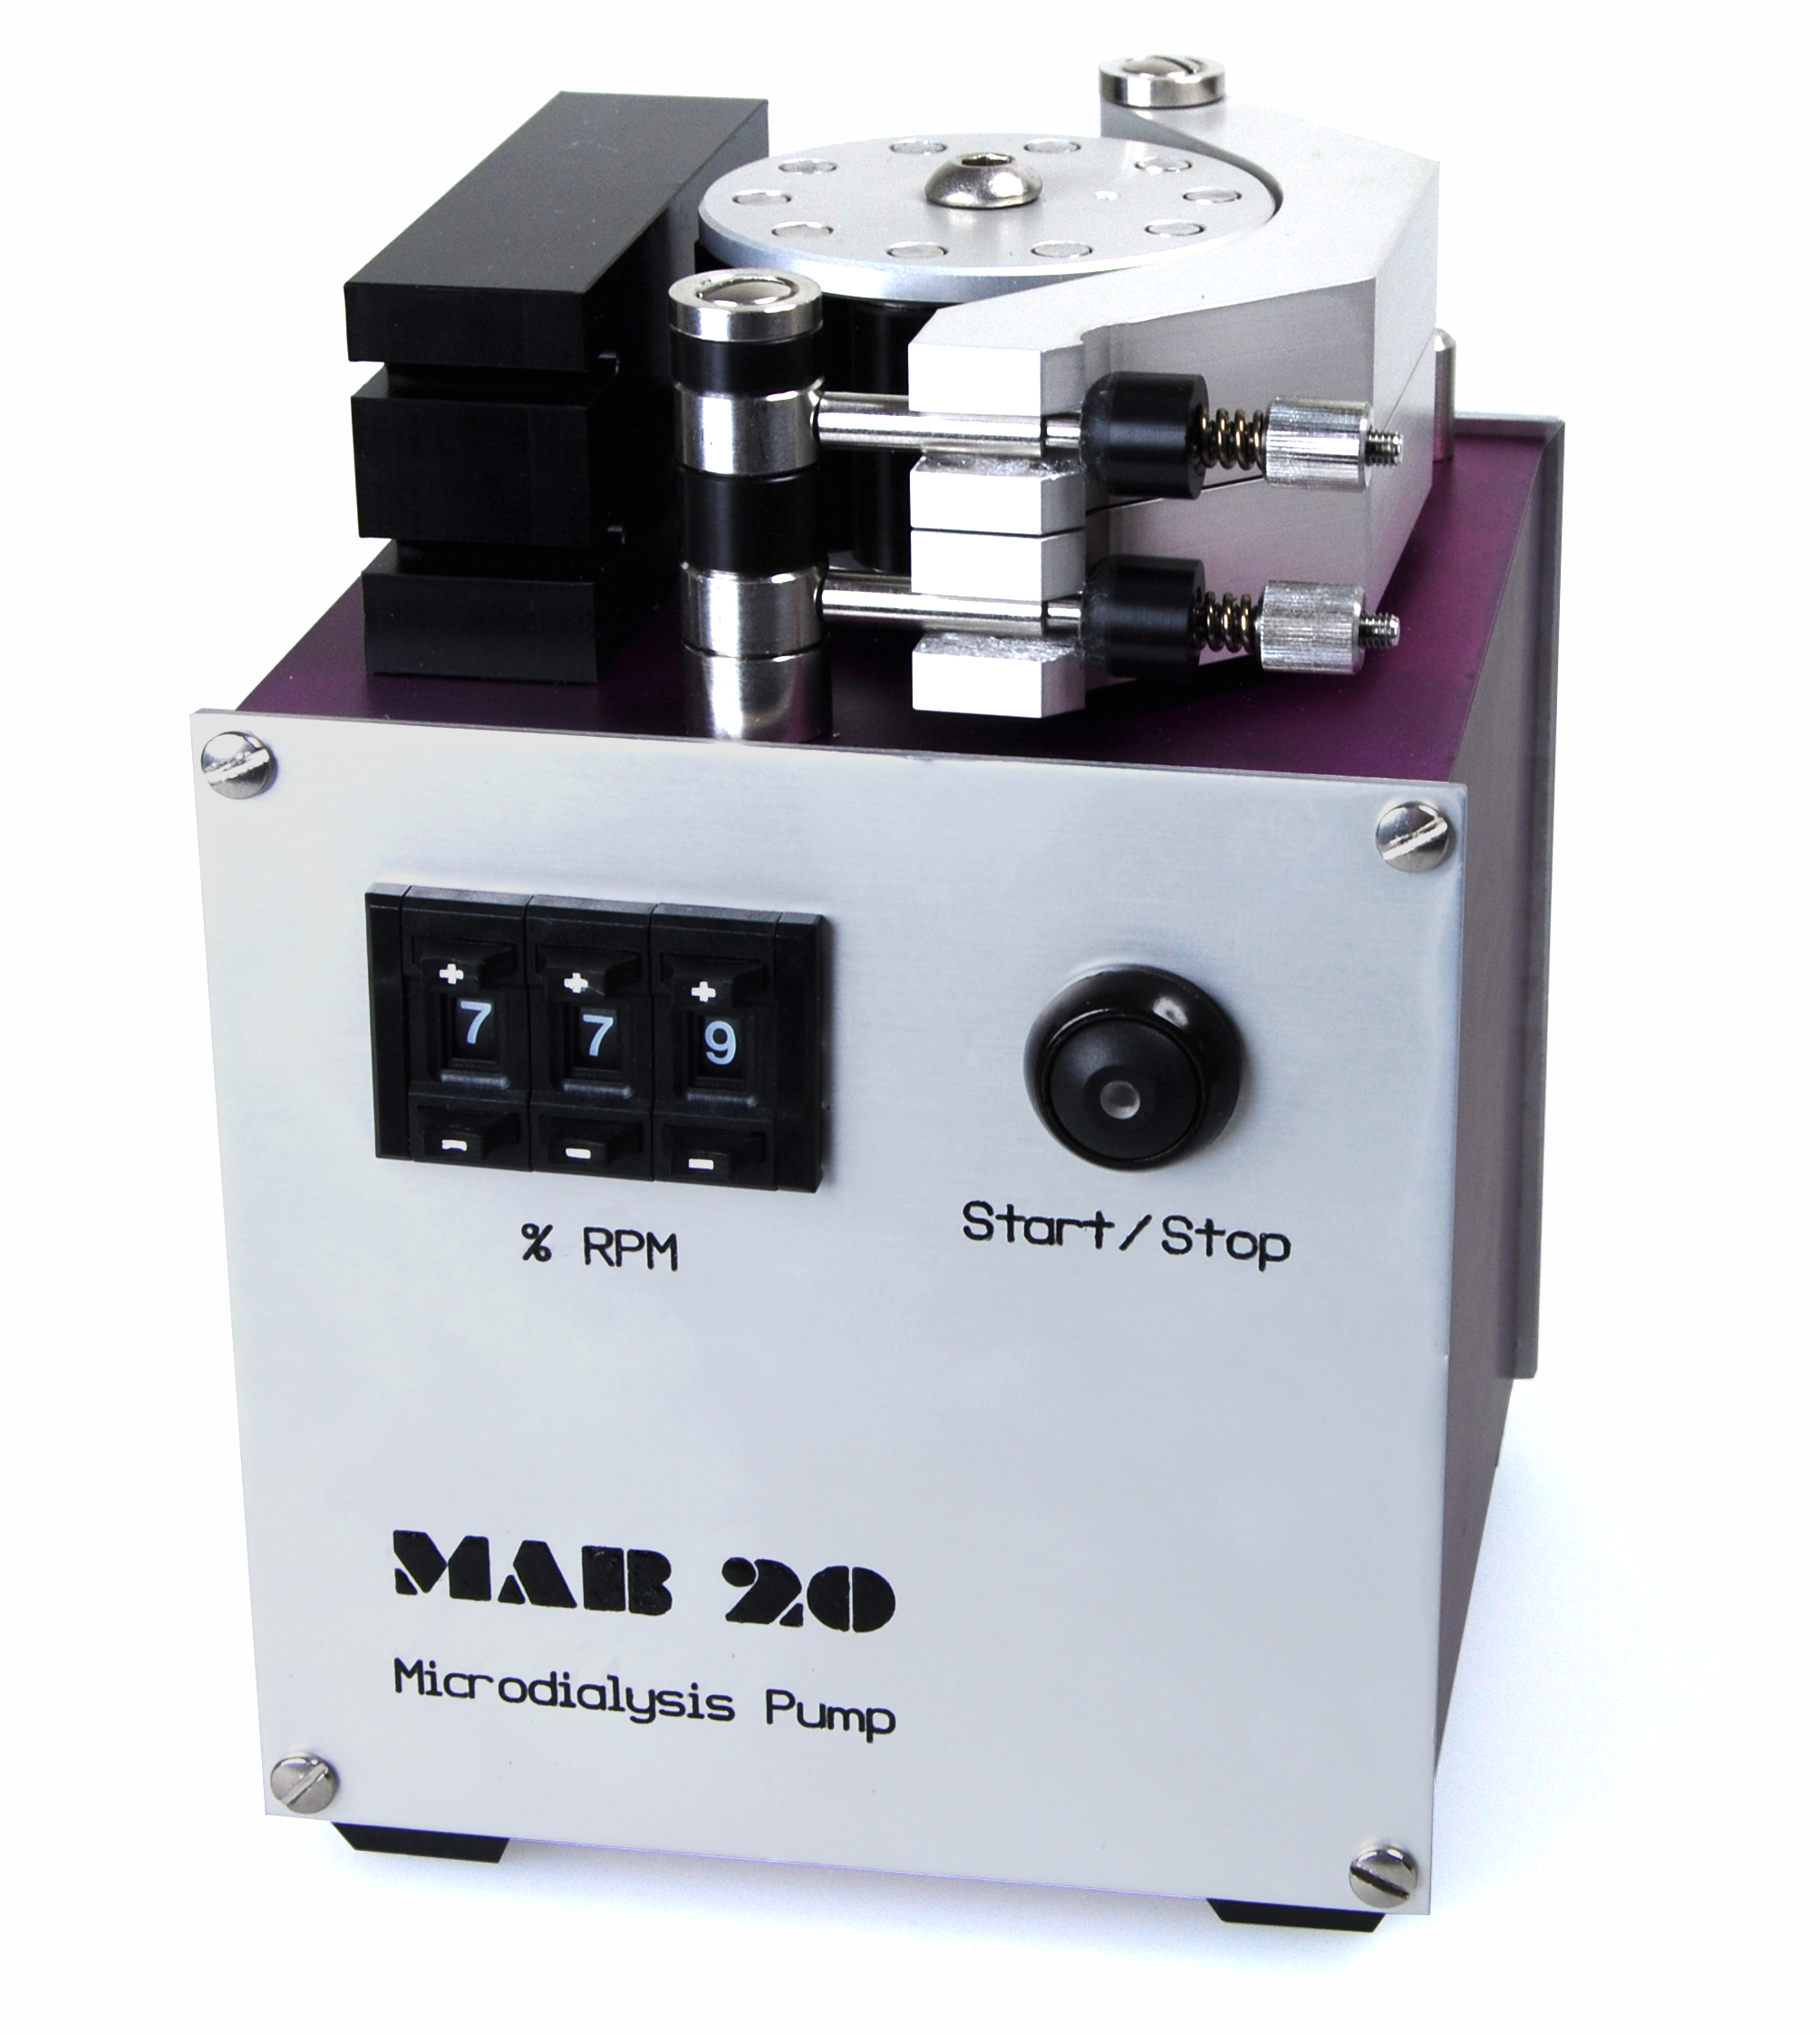 Microdialysis Pump MAB 20